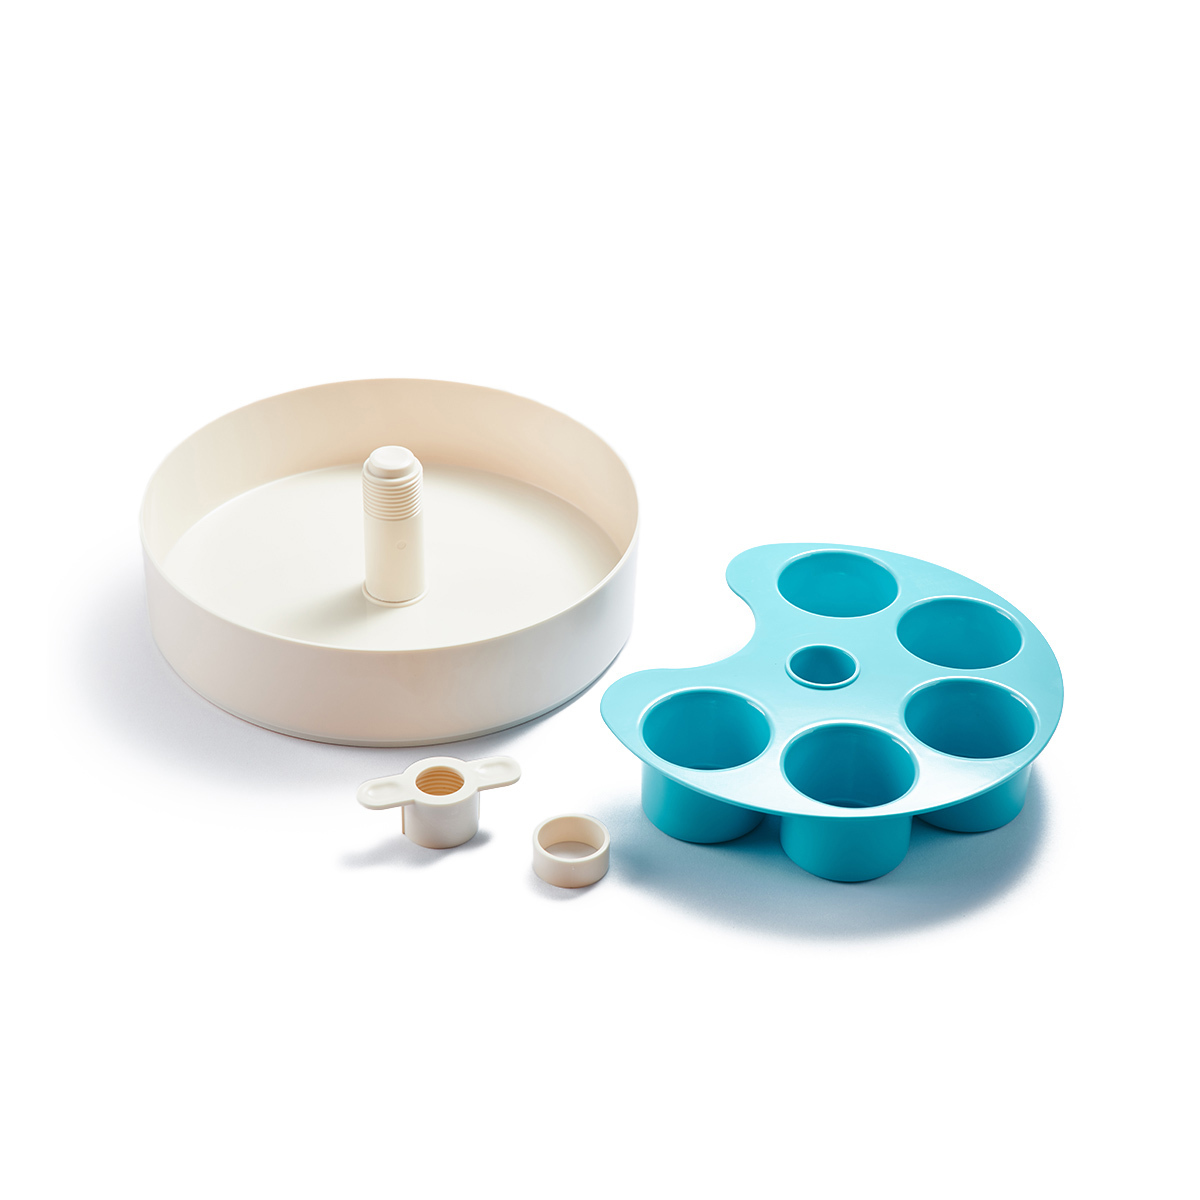 SPIN Interactive Adjustable Slow Feeder for Cats and Dogs - Cups image 6